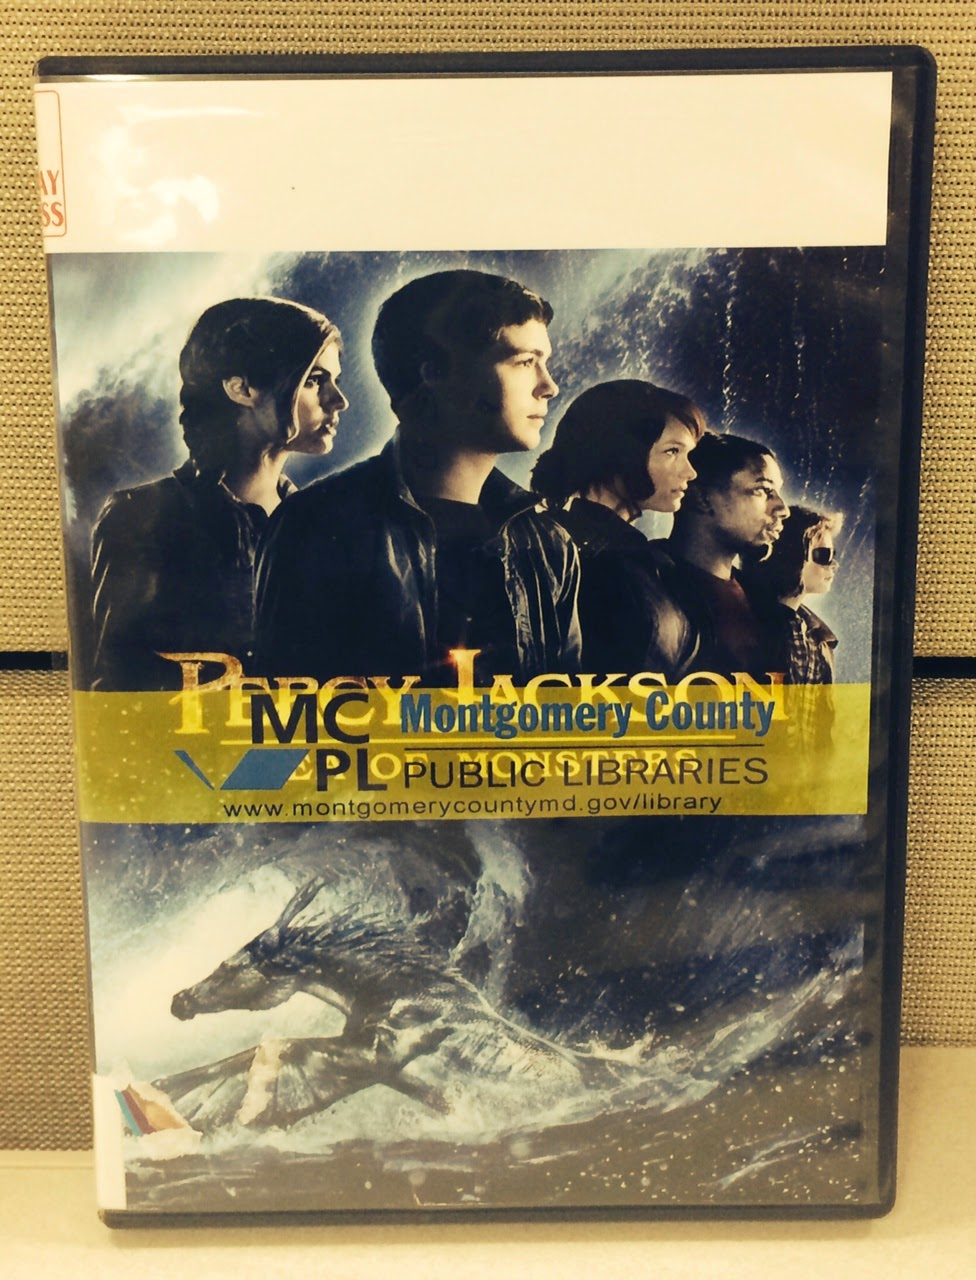 Percy Jackson: Sea of Monsters DVD cover